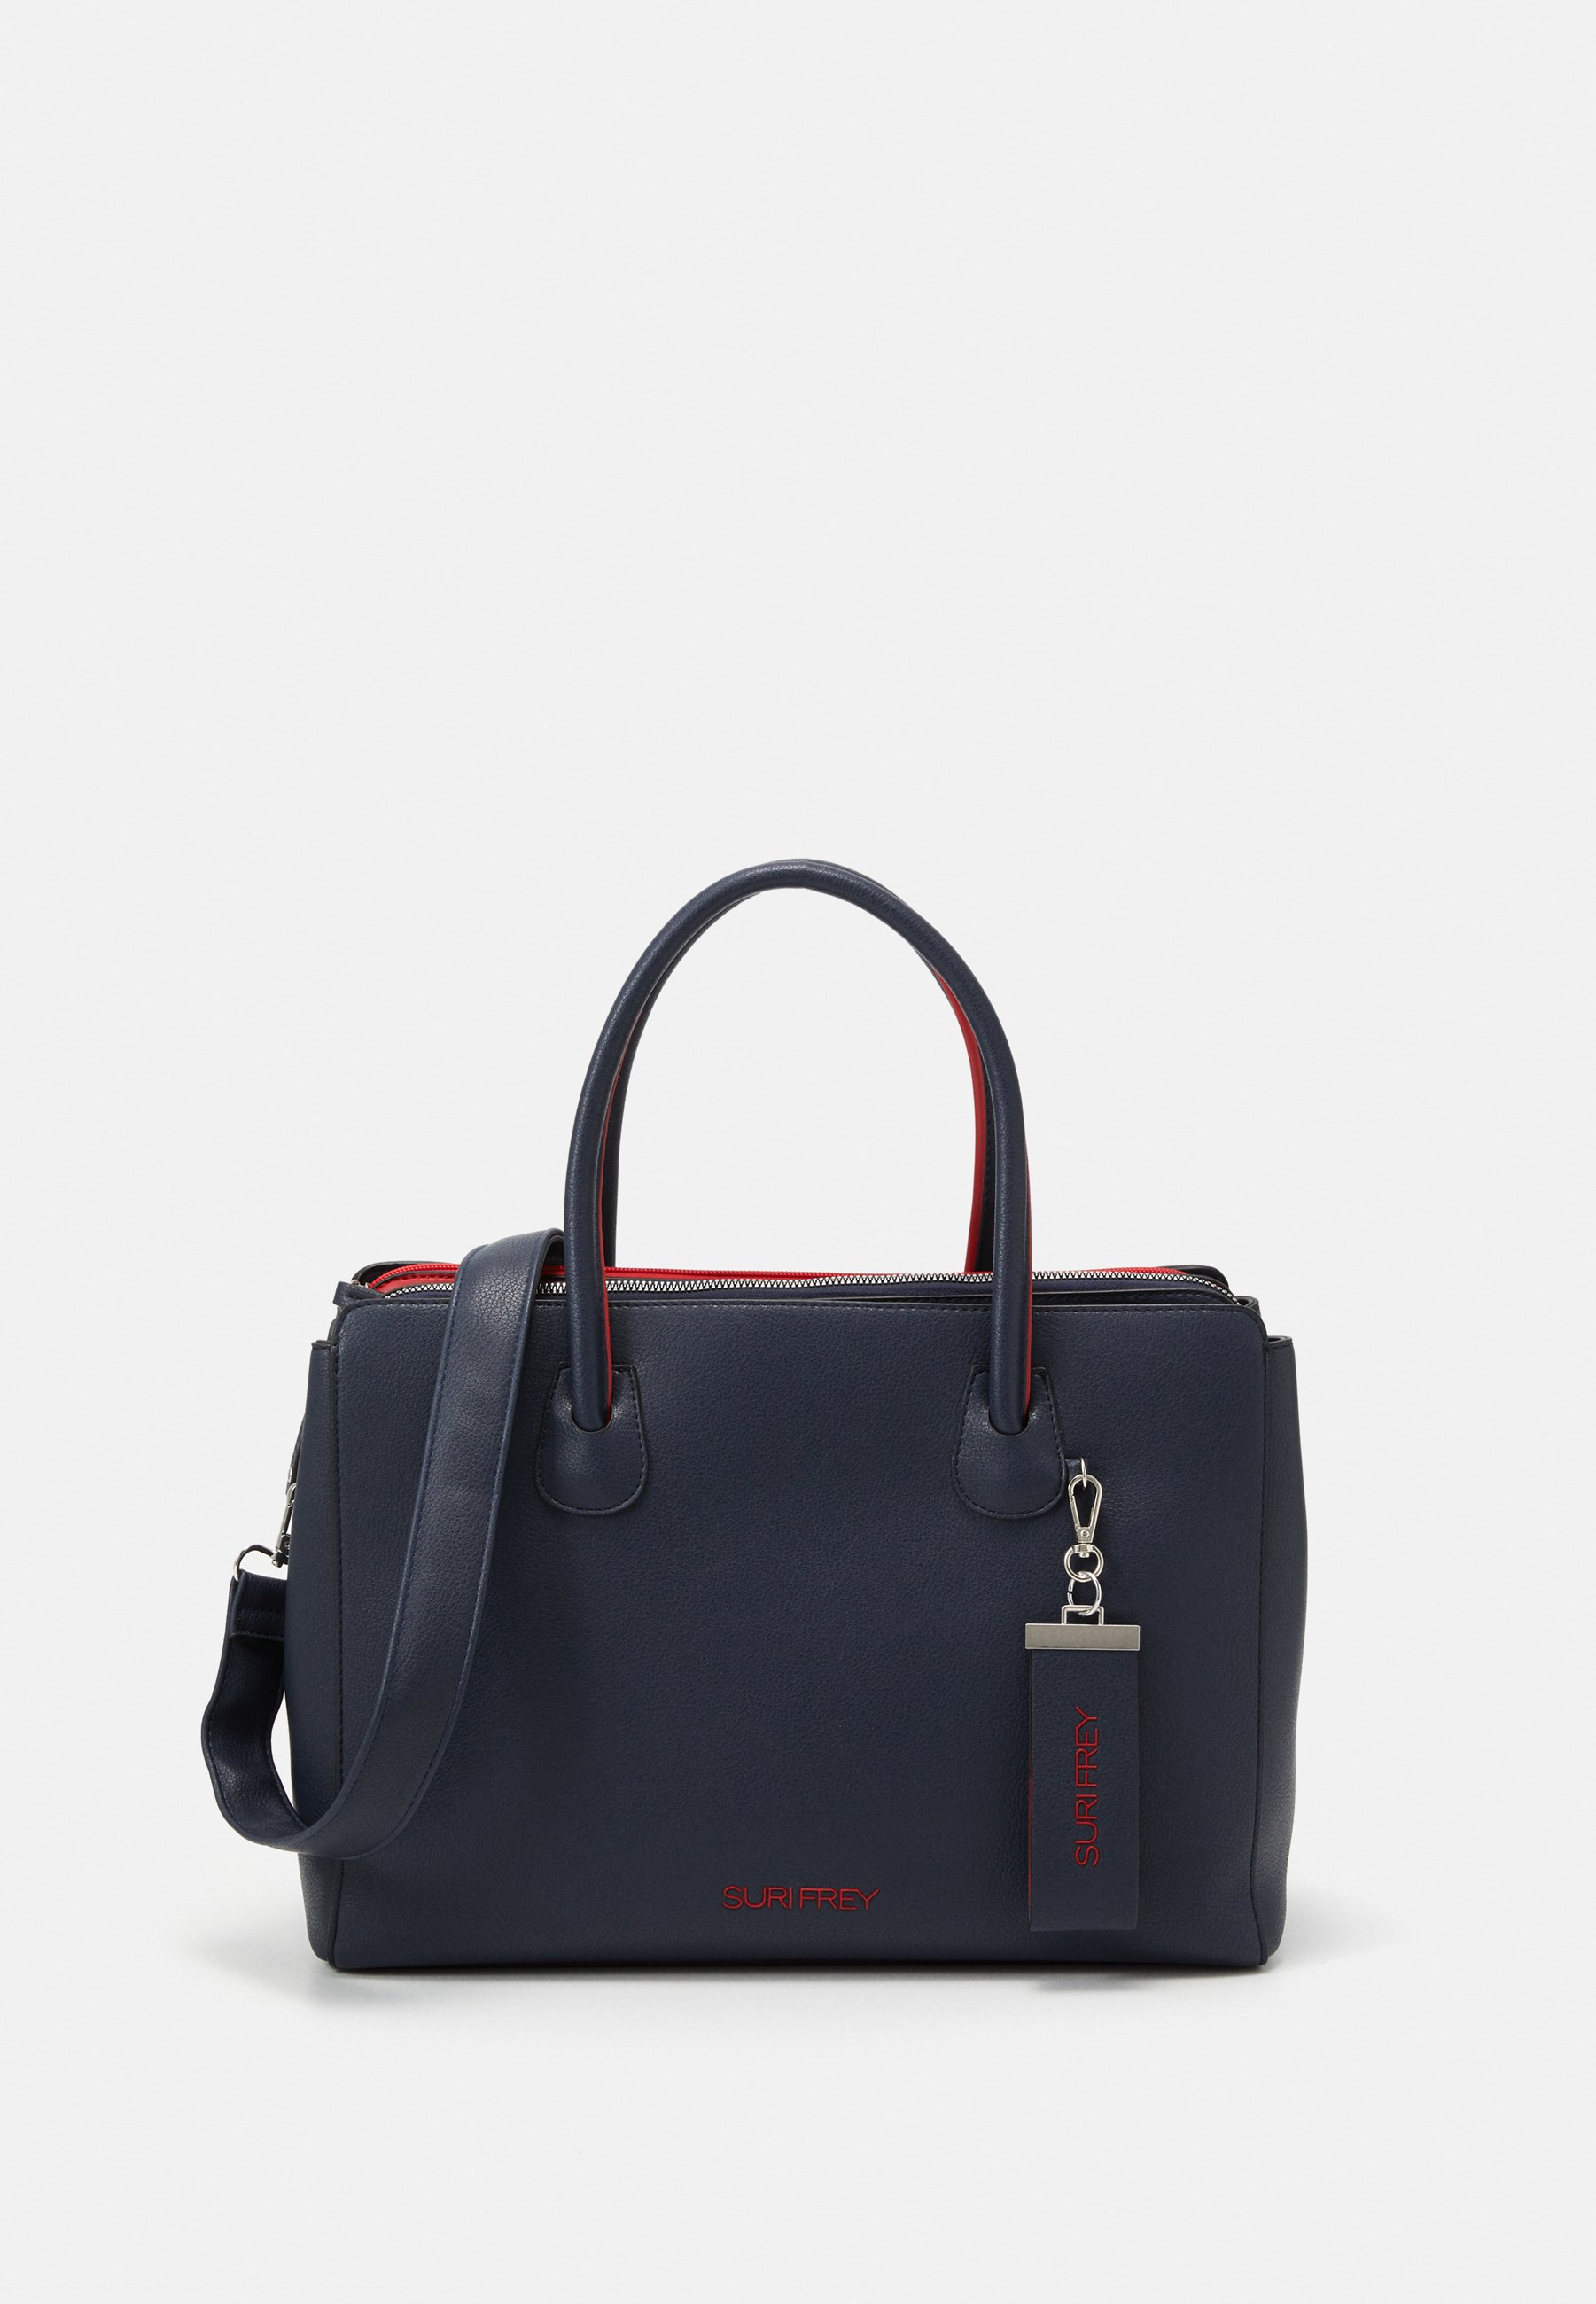 Suri Frey Philly Set - Shopping Bags Blue/red